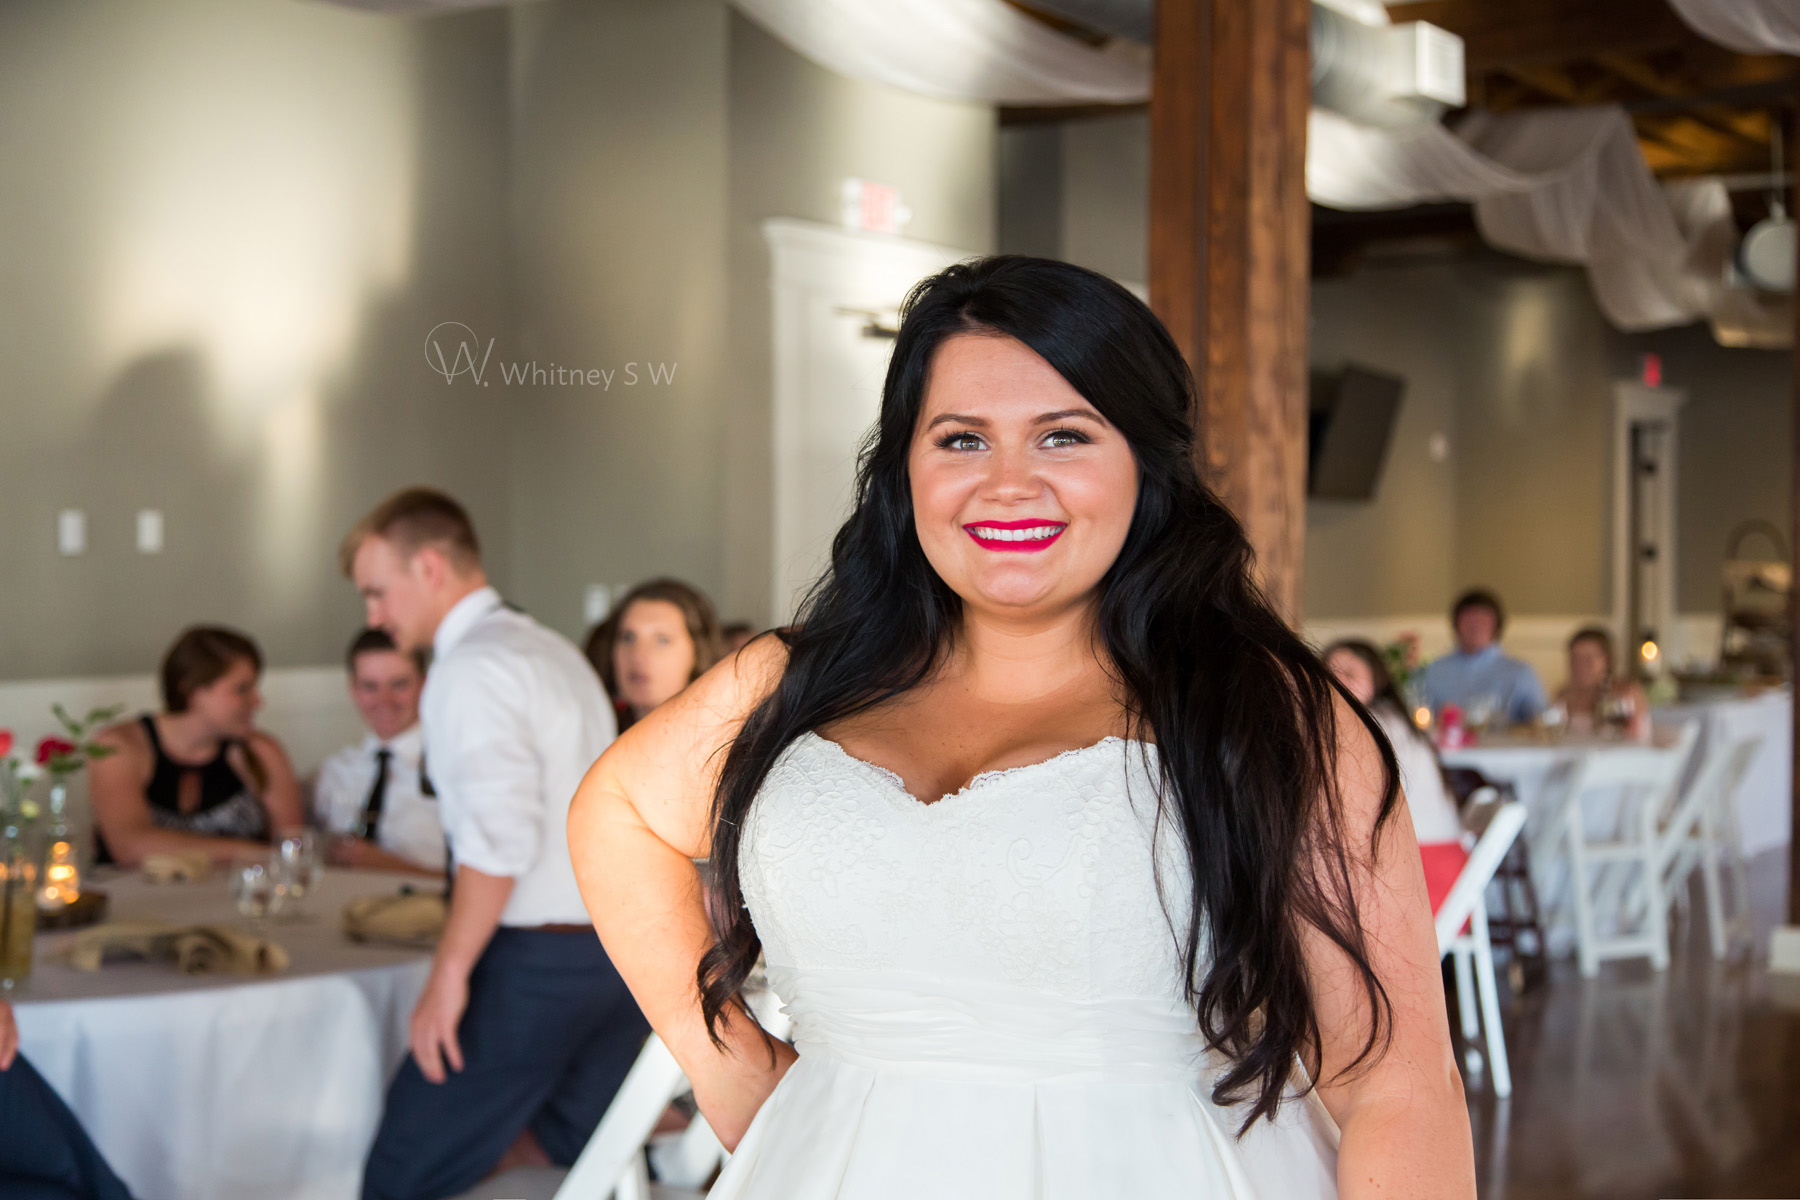 SimpsonFalinWedding_Photography by Whitney S Williams (333).jpg